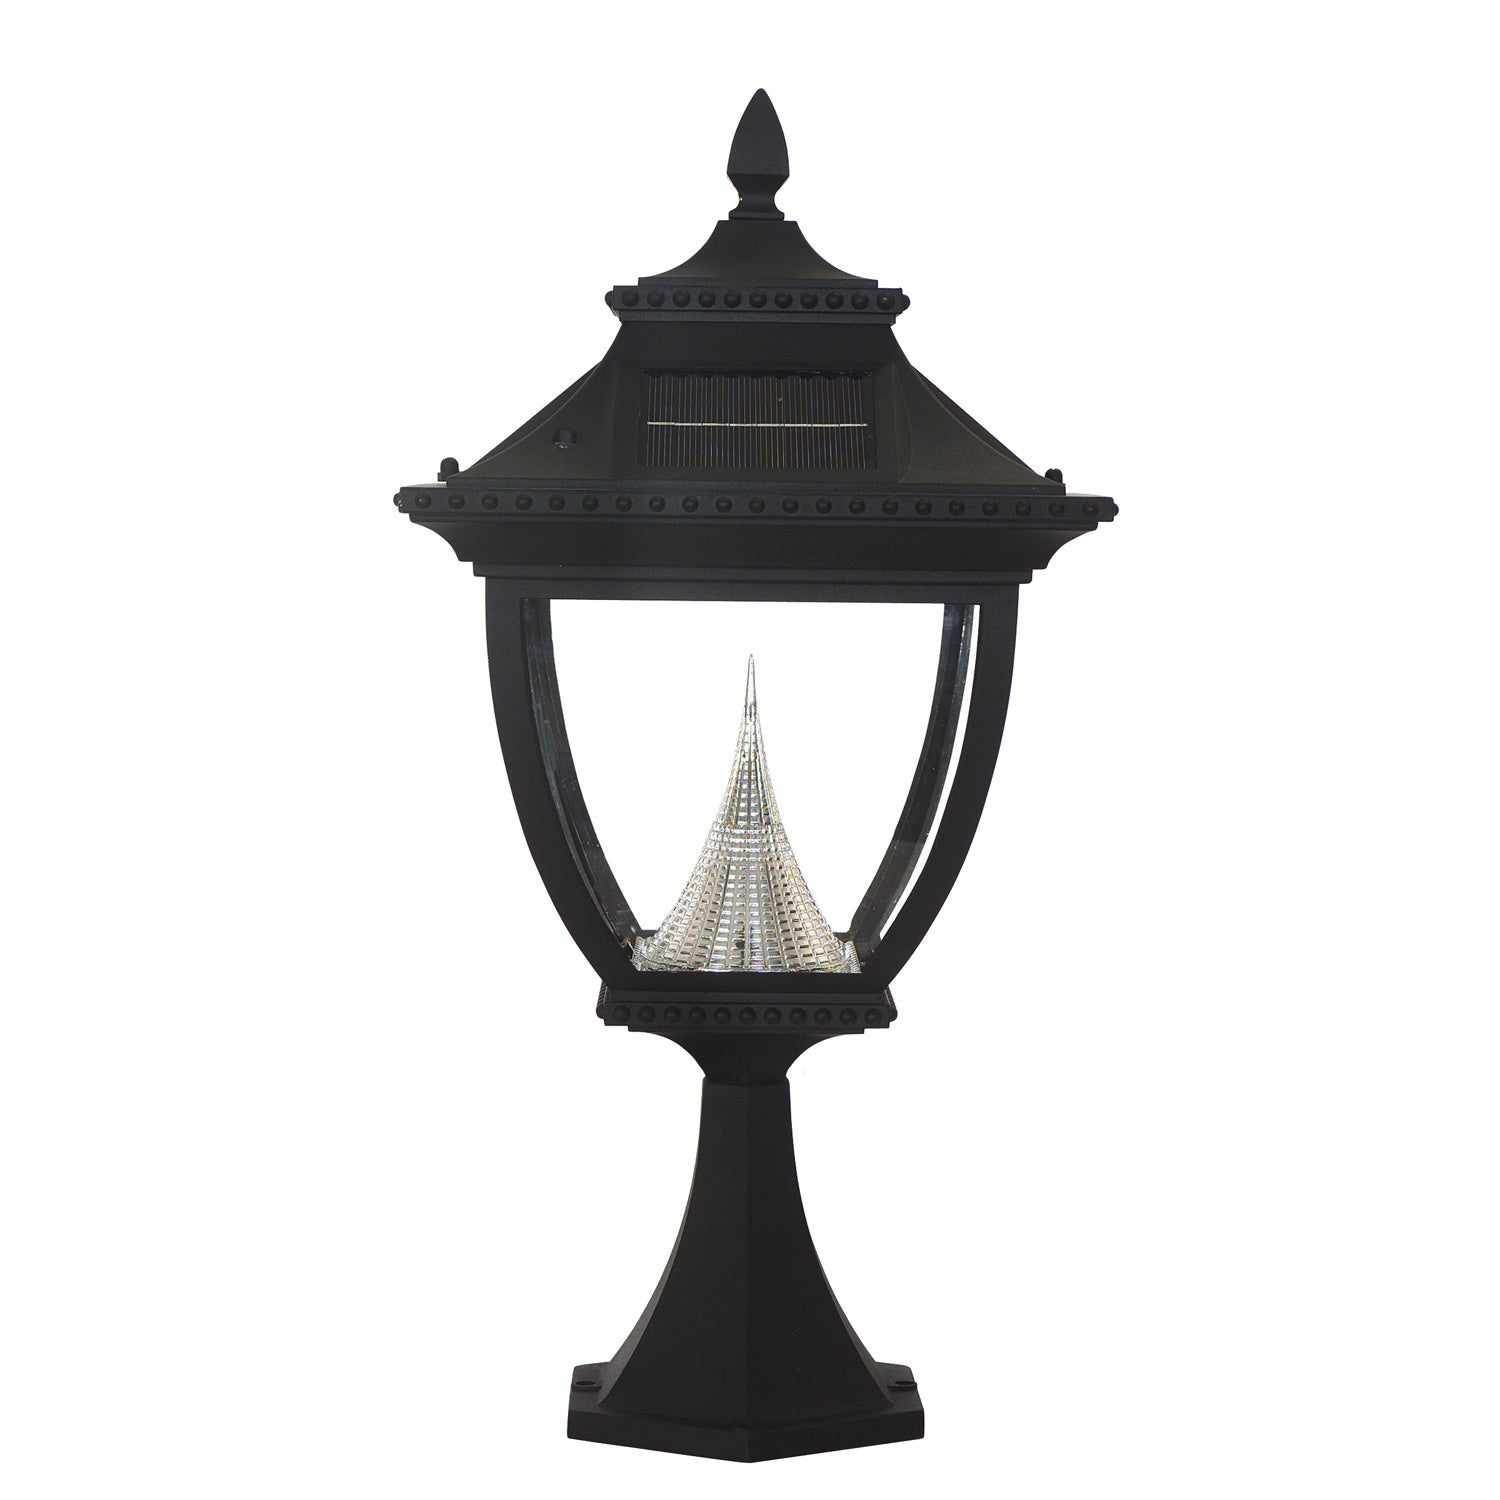 Gama Sonic GS-104P Pagoda Solar Light with 8 Bright-White...